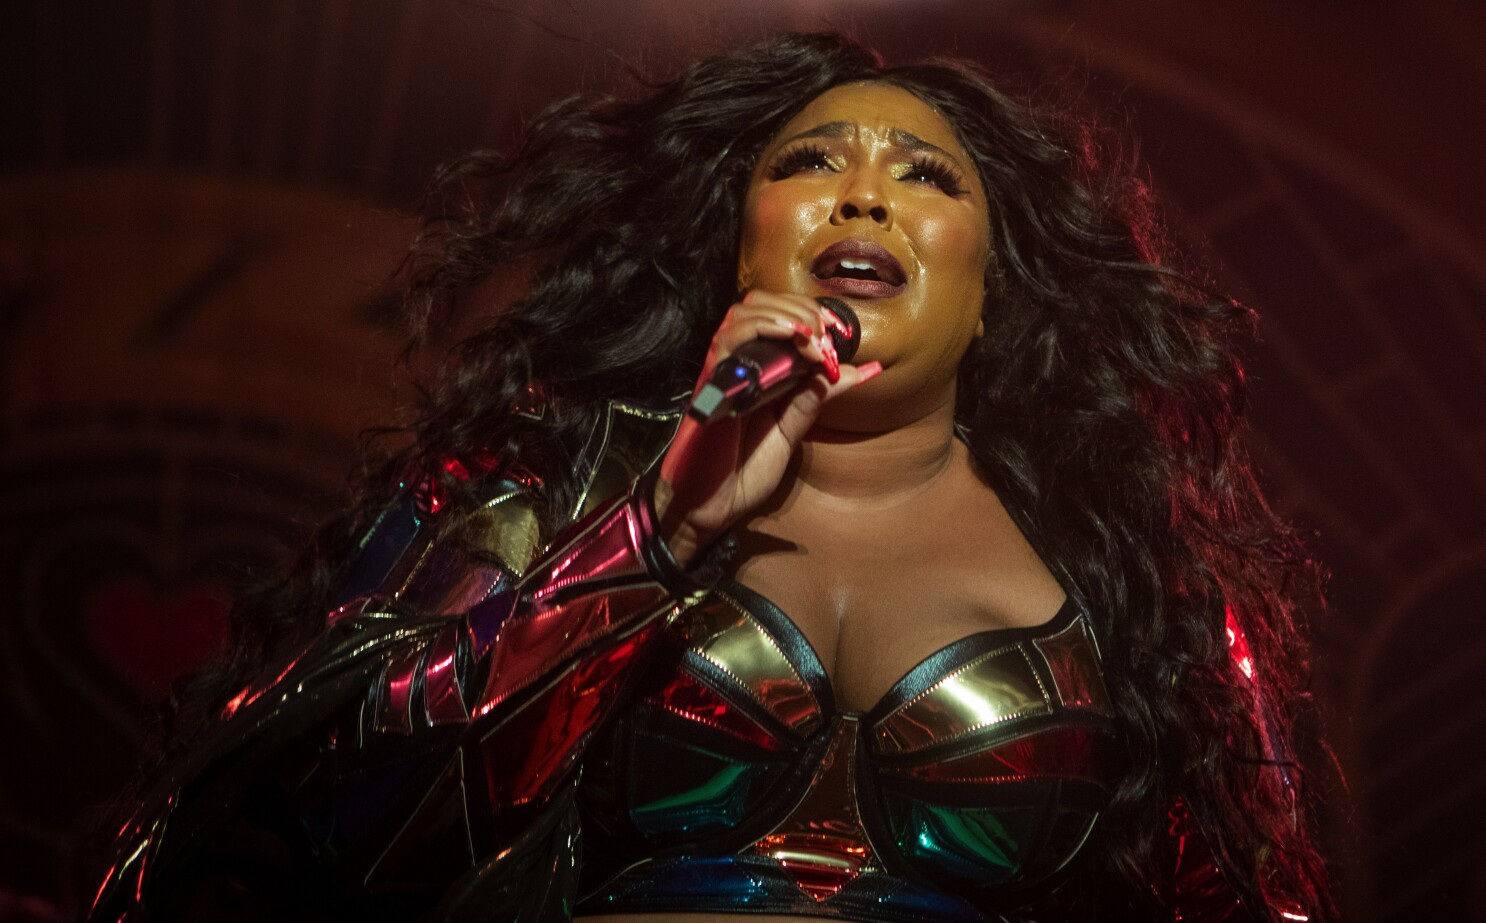 Andrea Berg Oops grammy nominations 2020: lizzo, billie eilish lead the pack